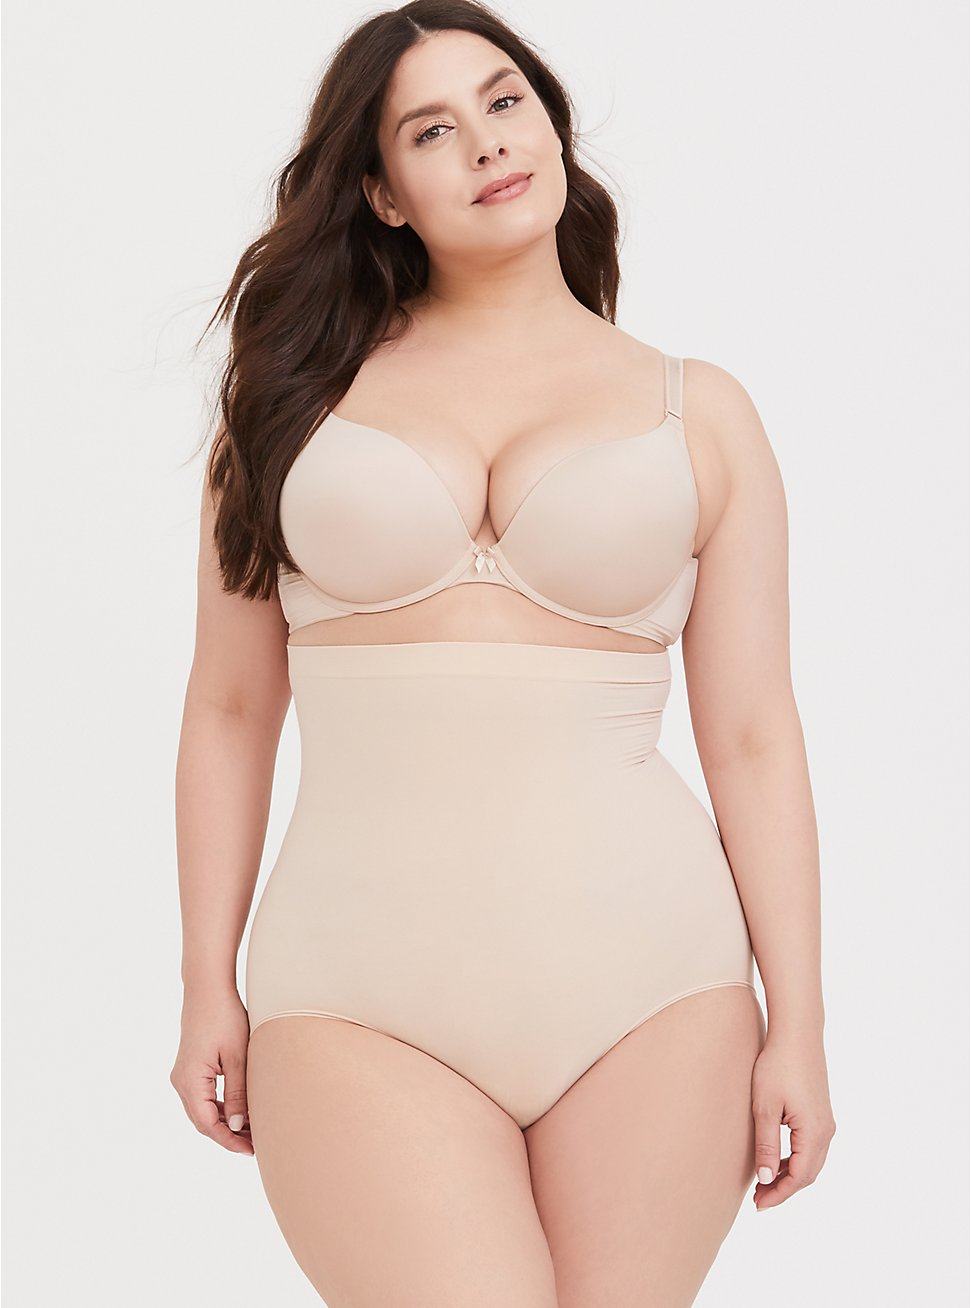 Cheap Spanx Shapewear Sales Tax